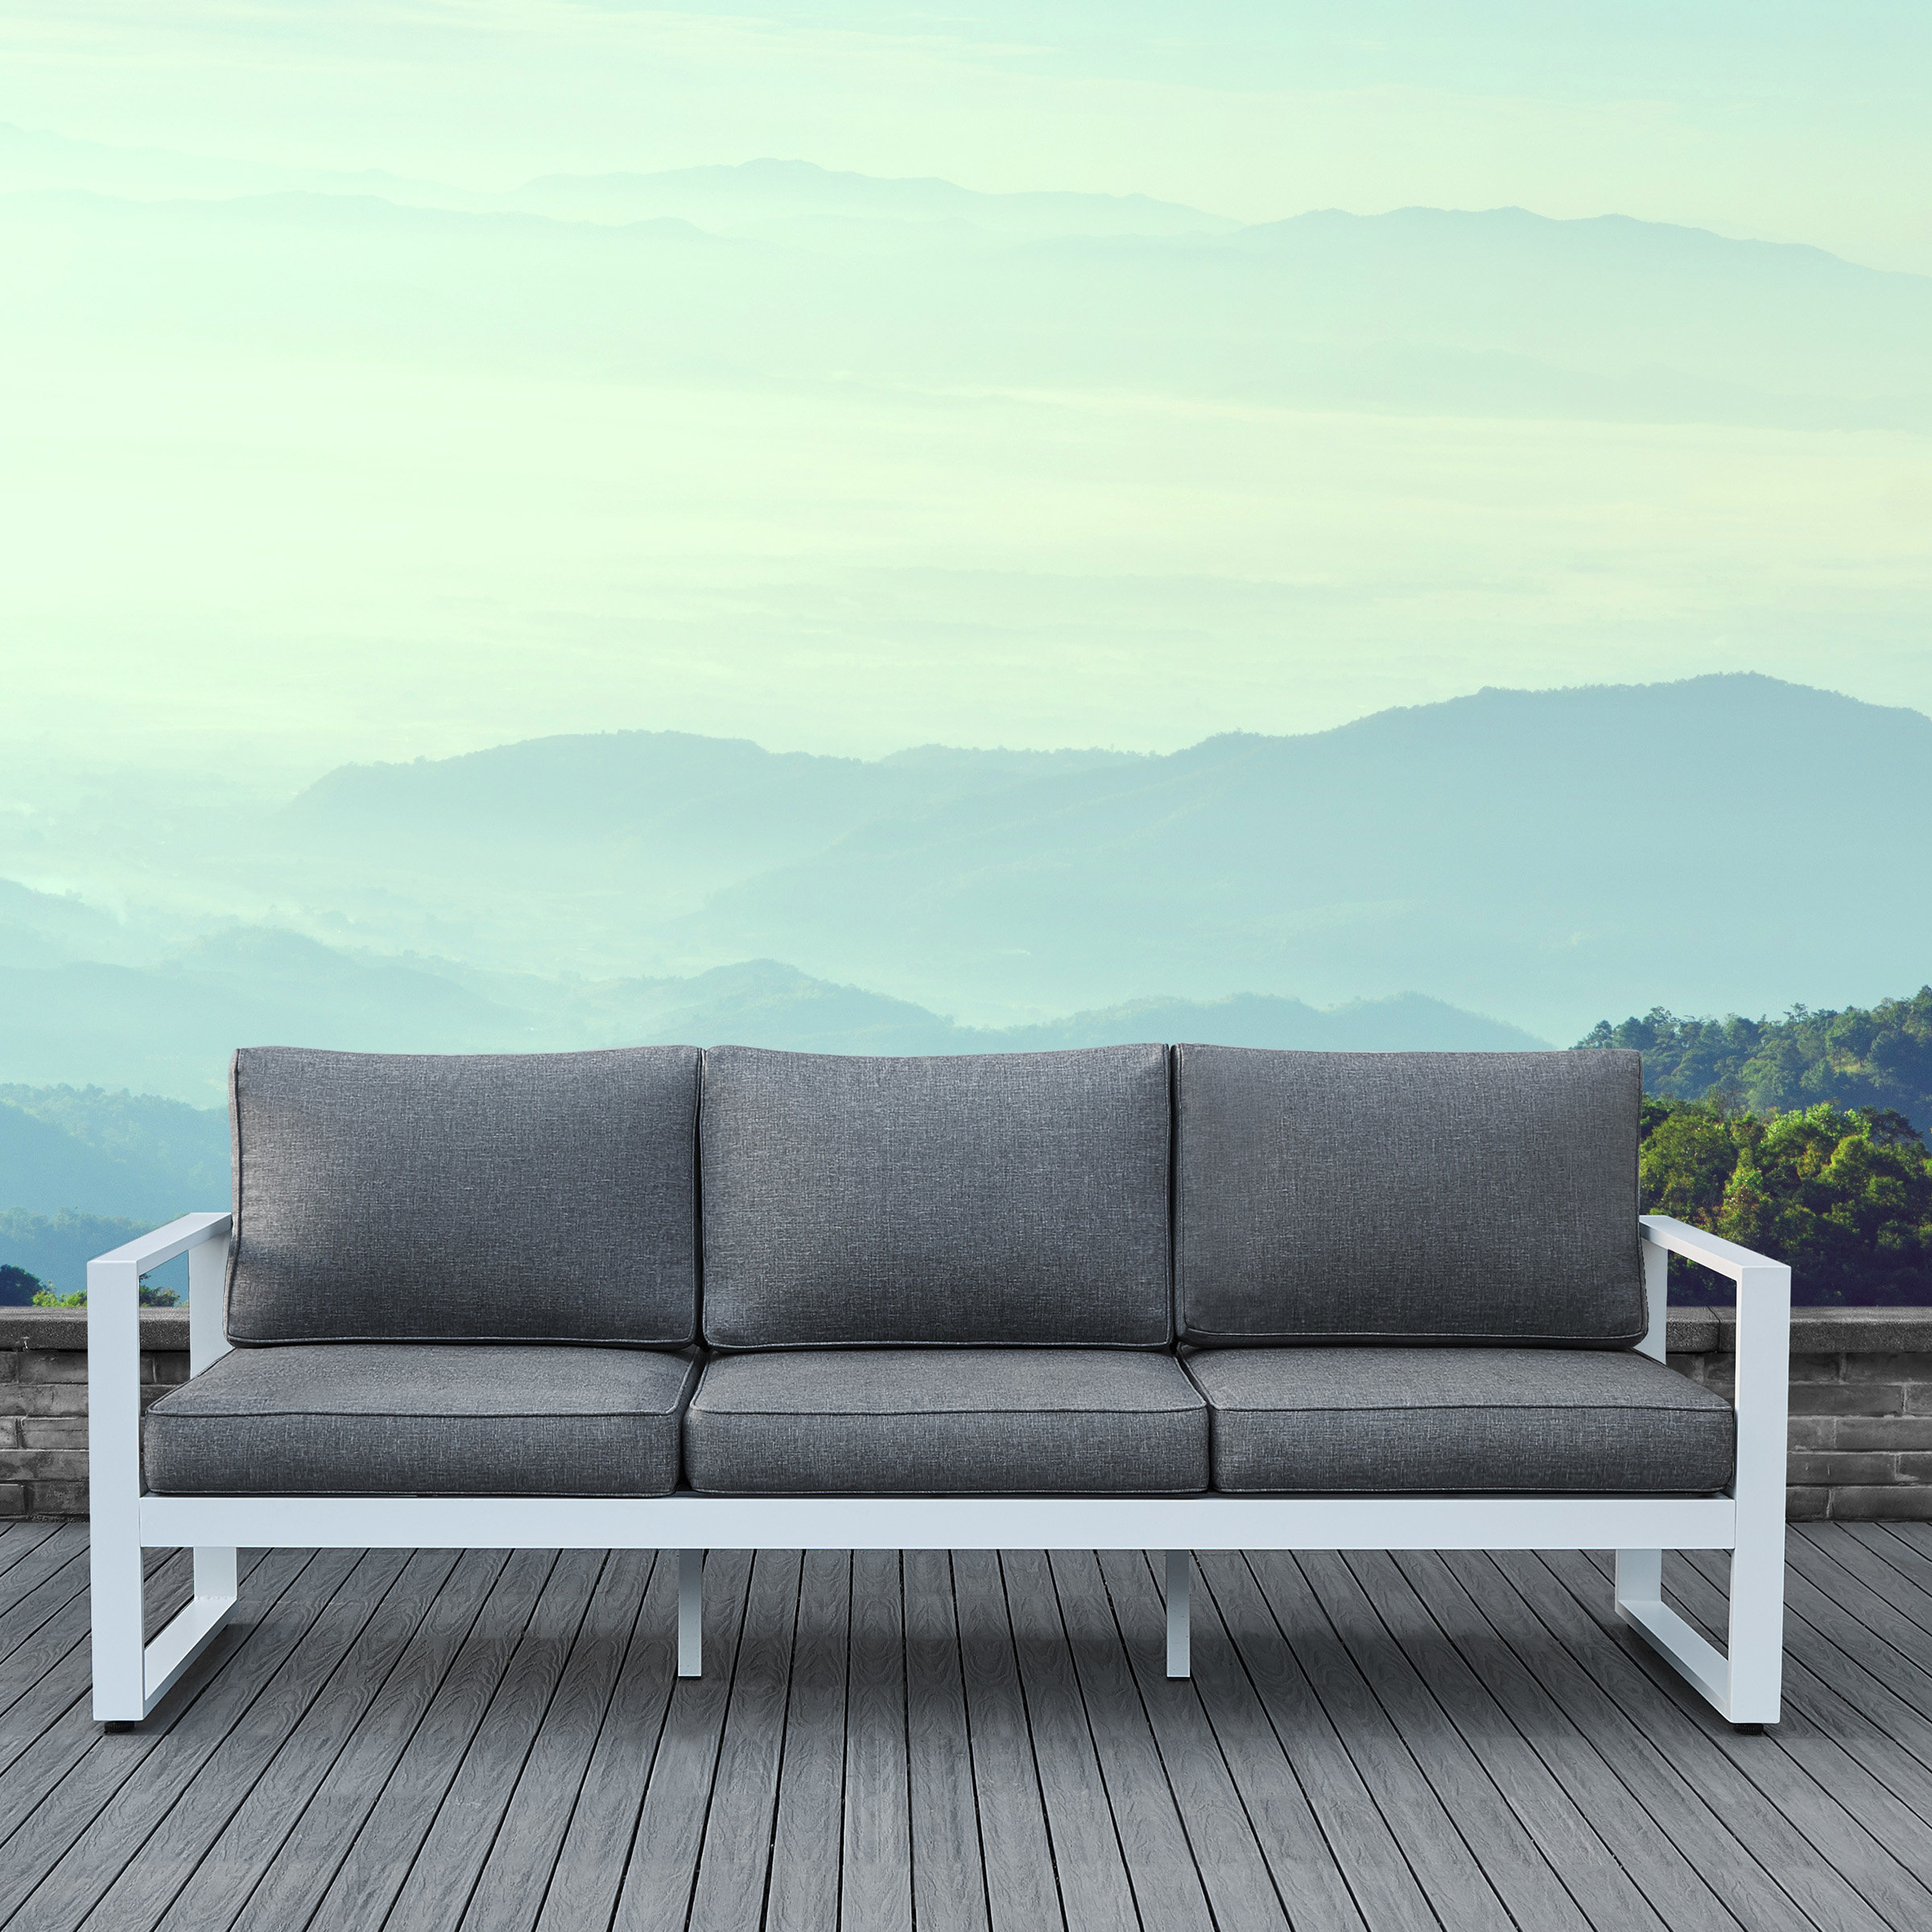 2019 Baltic Patio Sofa With Cushions Throughout Royalston Patio Sofas With Cushions (View 1 of 20)